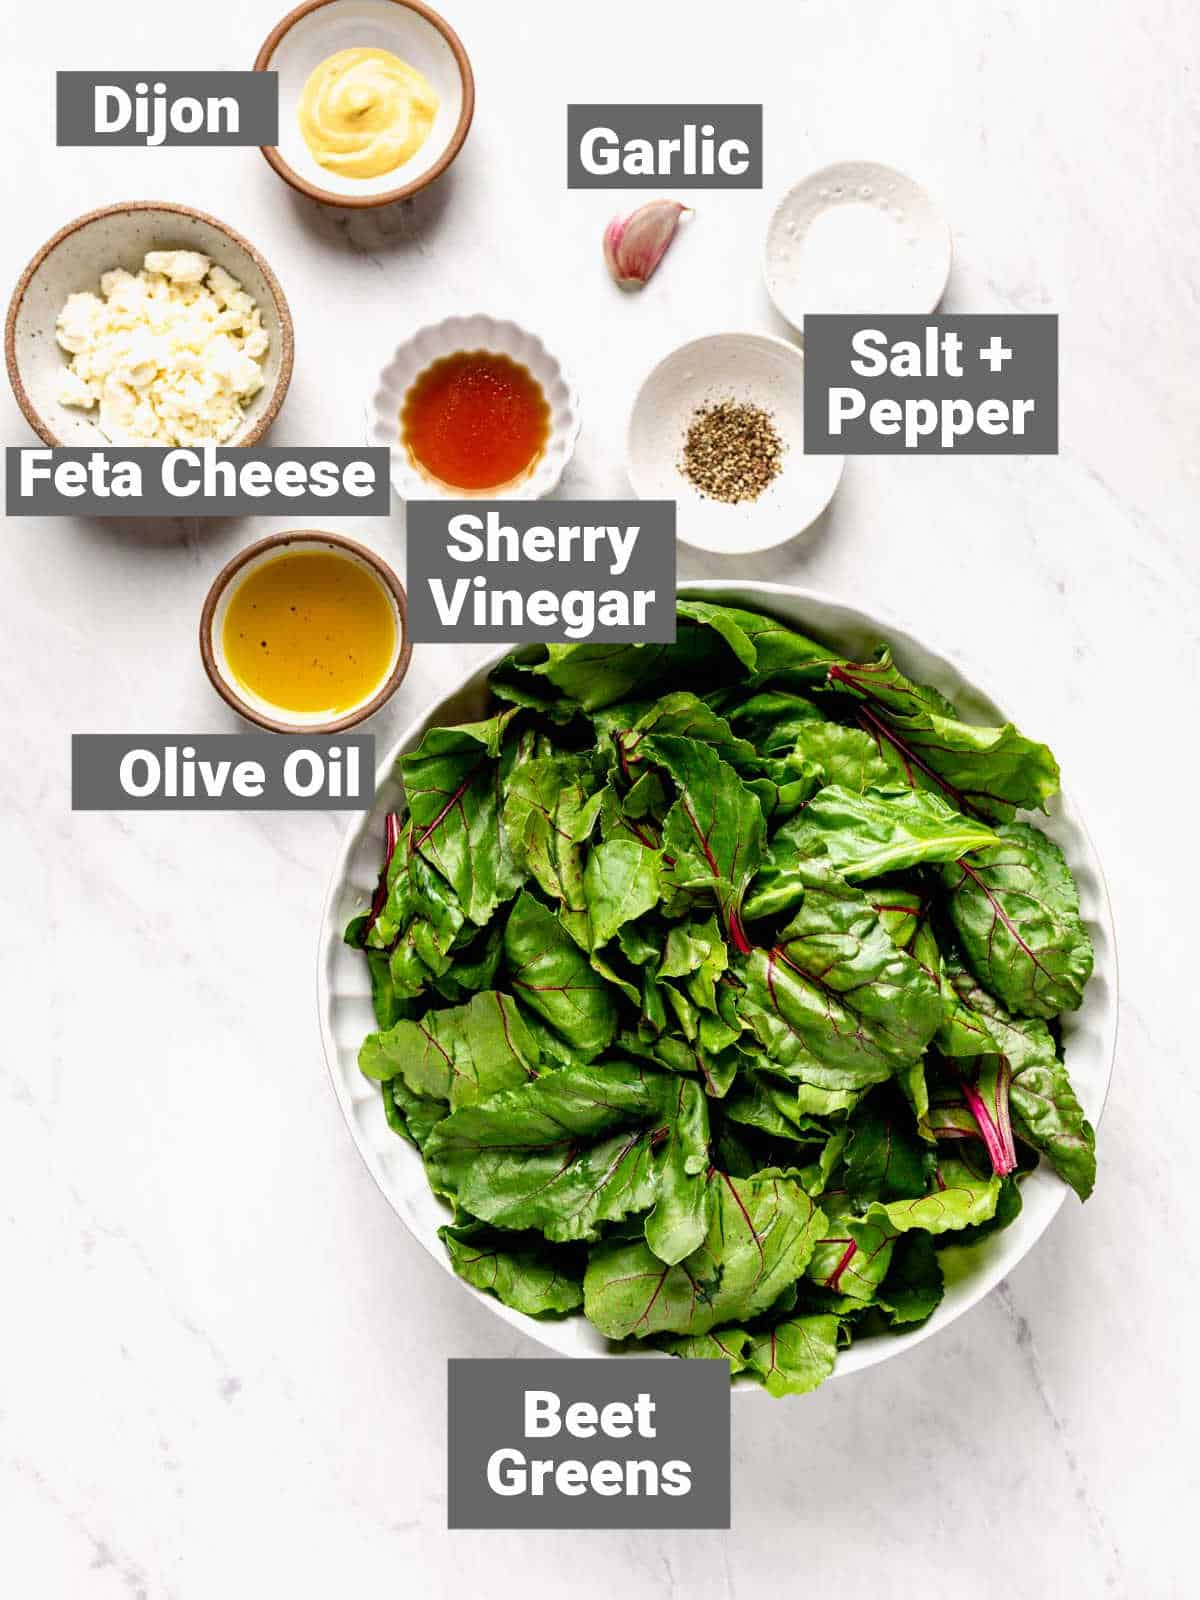 ingredients for this recipe with labels